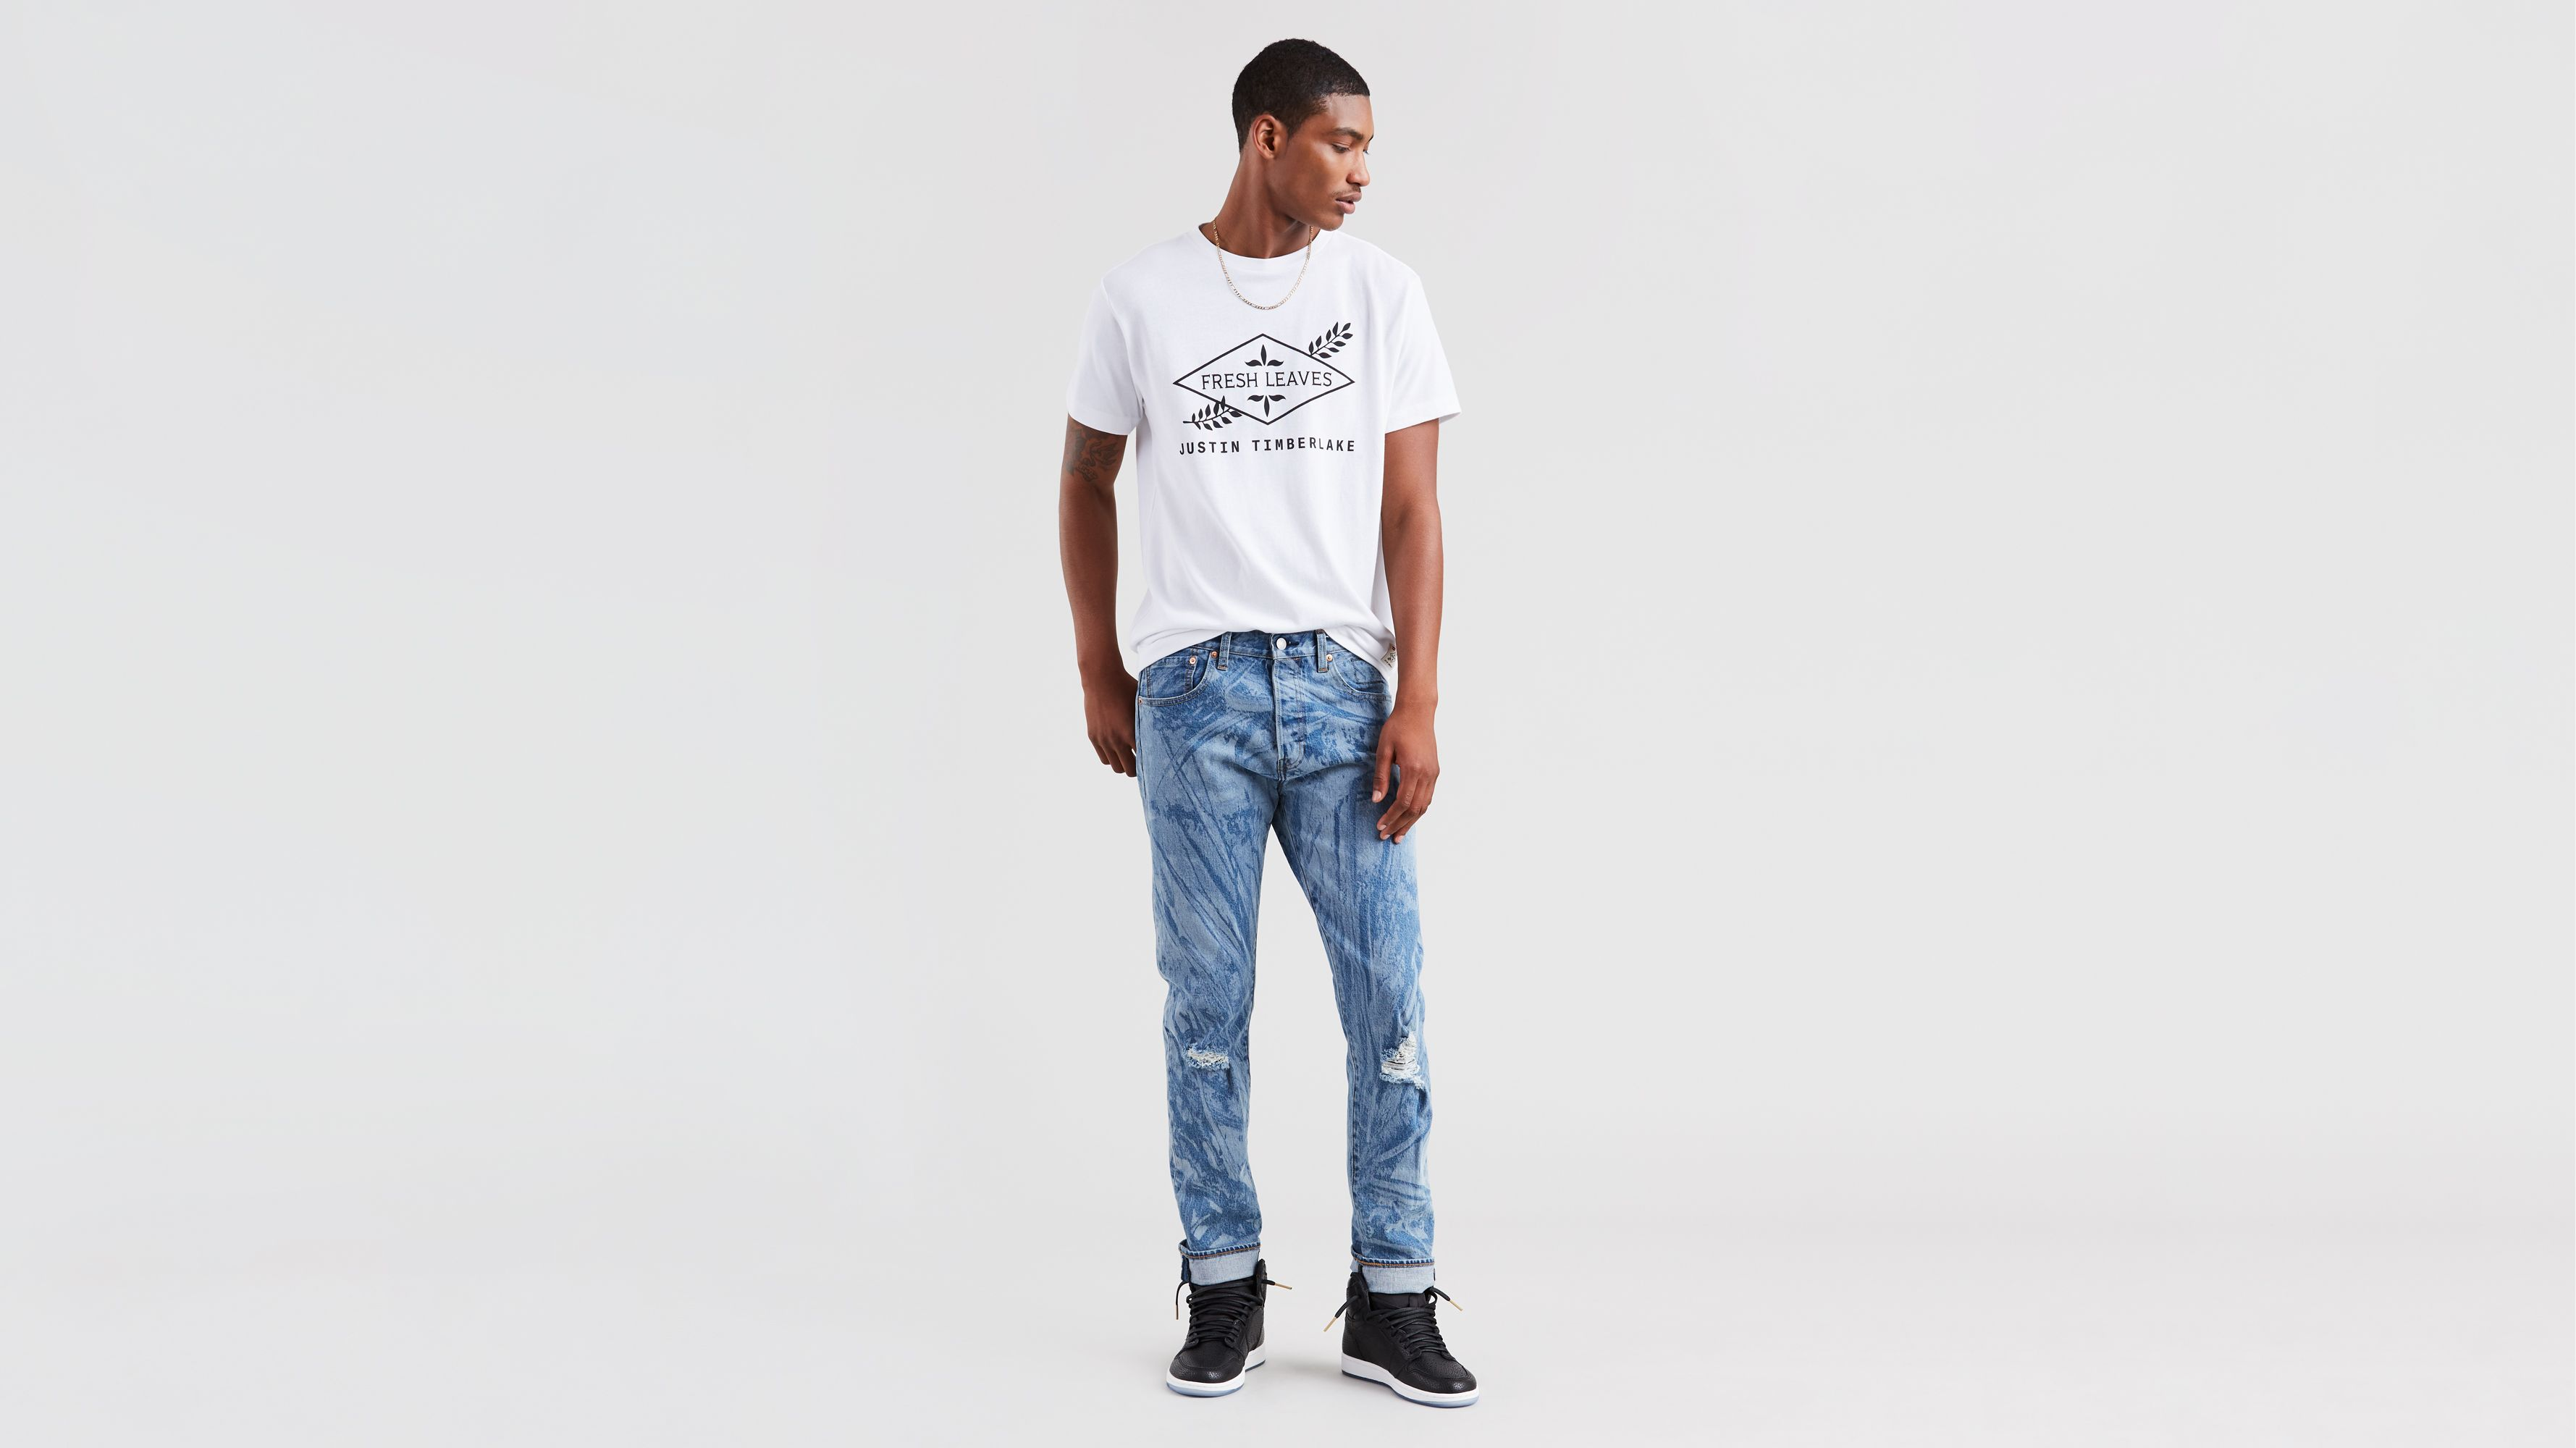 Every item in the Levi's x Justin Timberlake collection